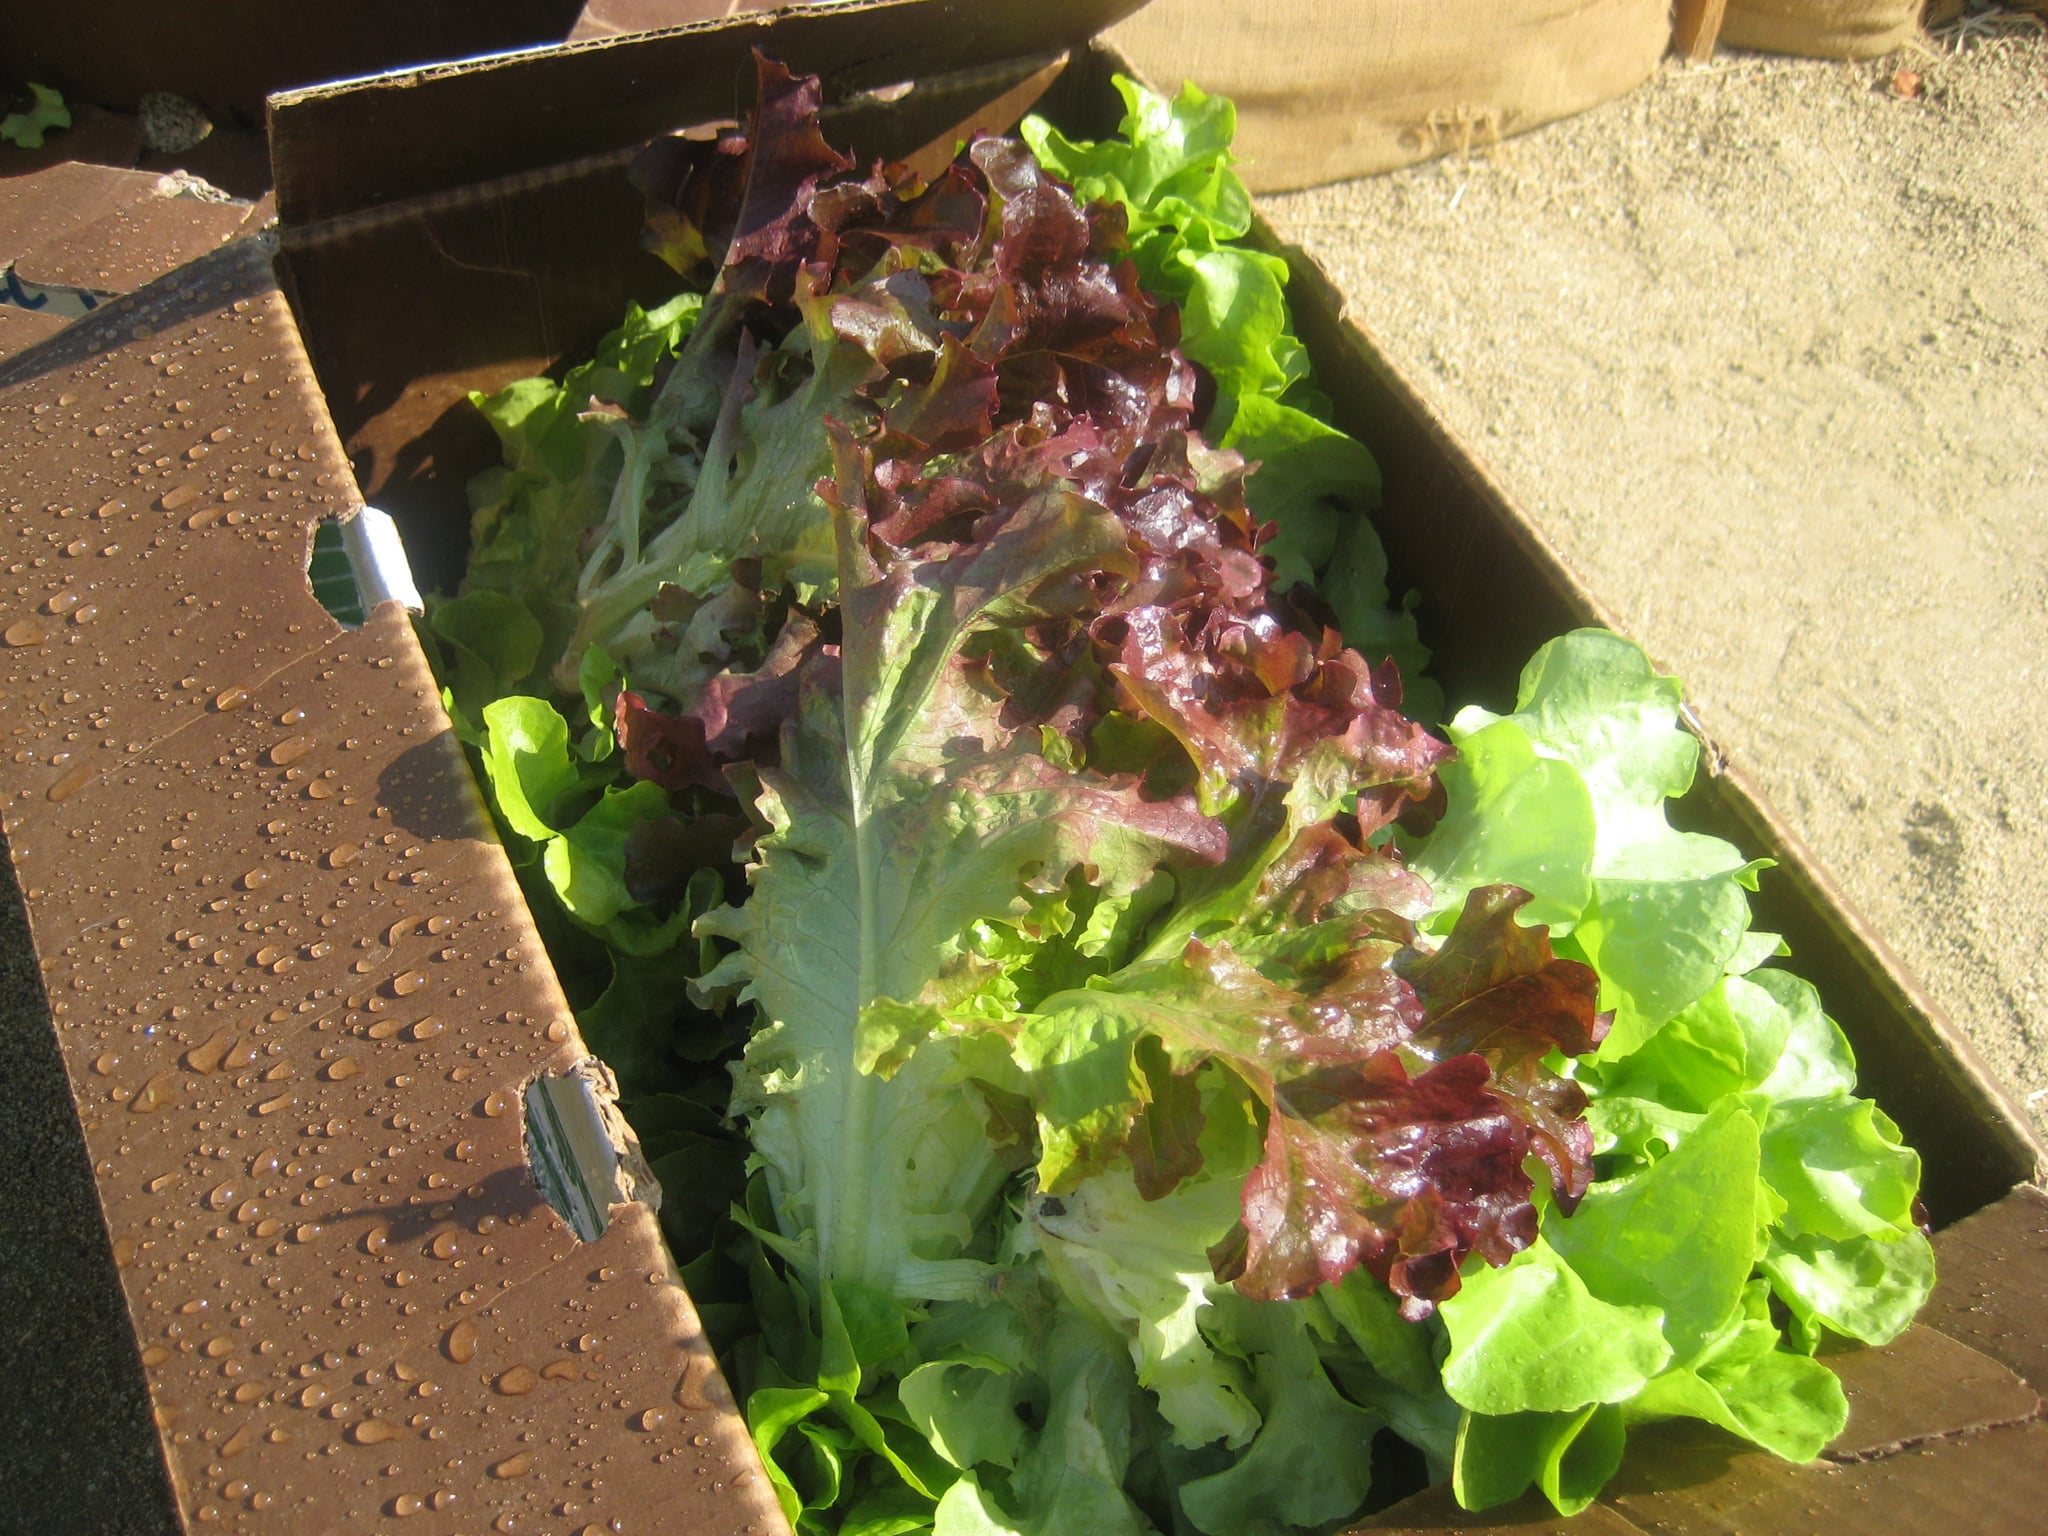 After harvesting the collard greens, I washed this box of lettuce heads.